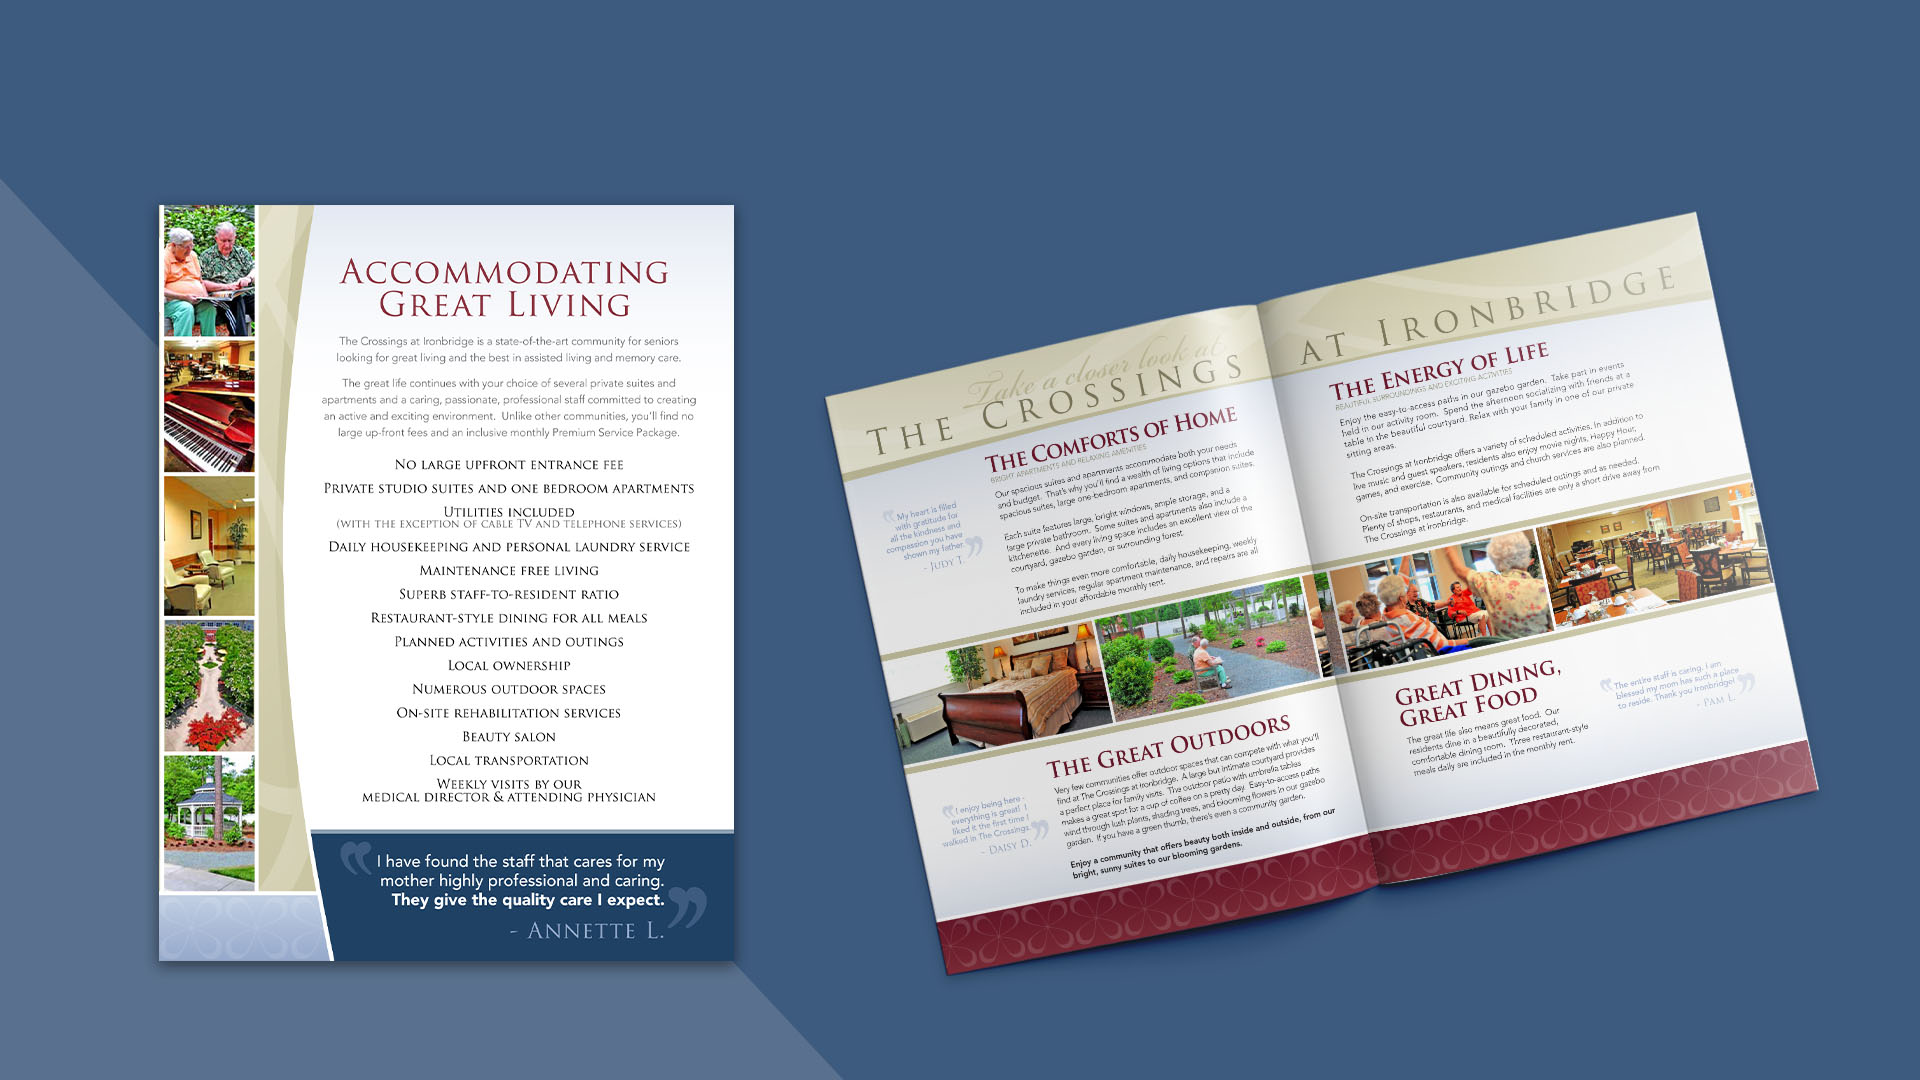 brochure for the Crossings at Ironbridge